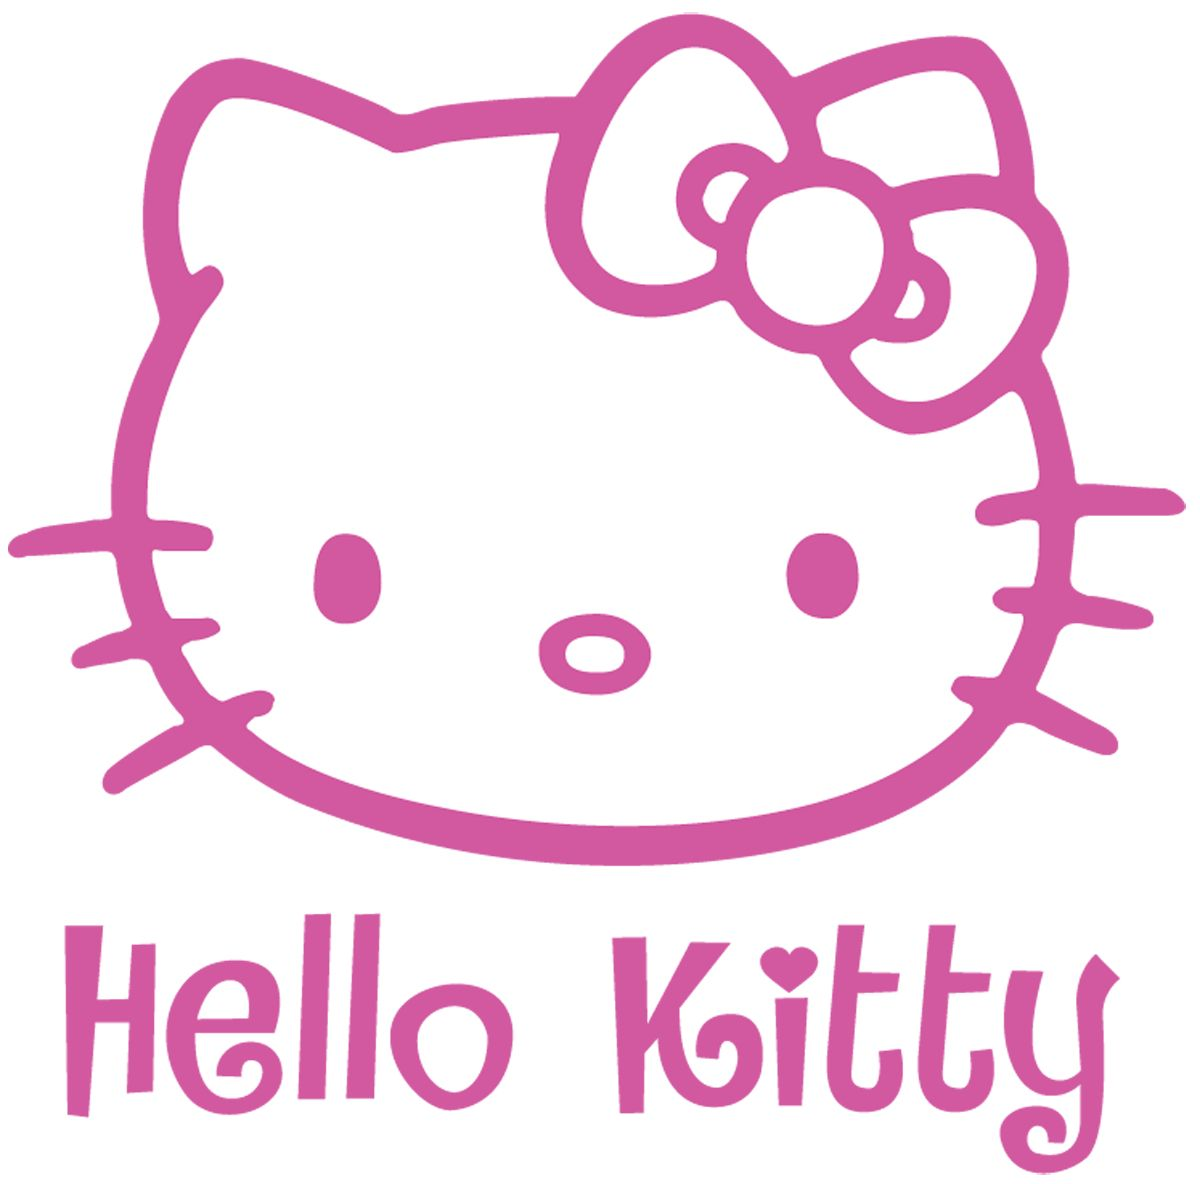 hello kitty file picture hello kitty kitty and svg file rh pinterest com  hello kitty logo font free